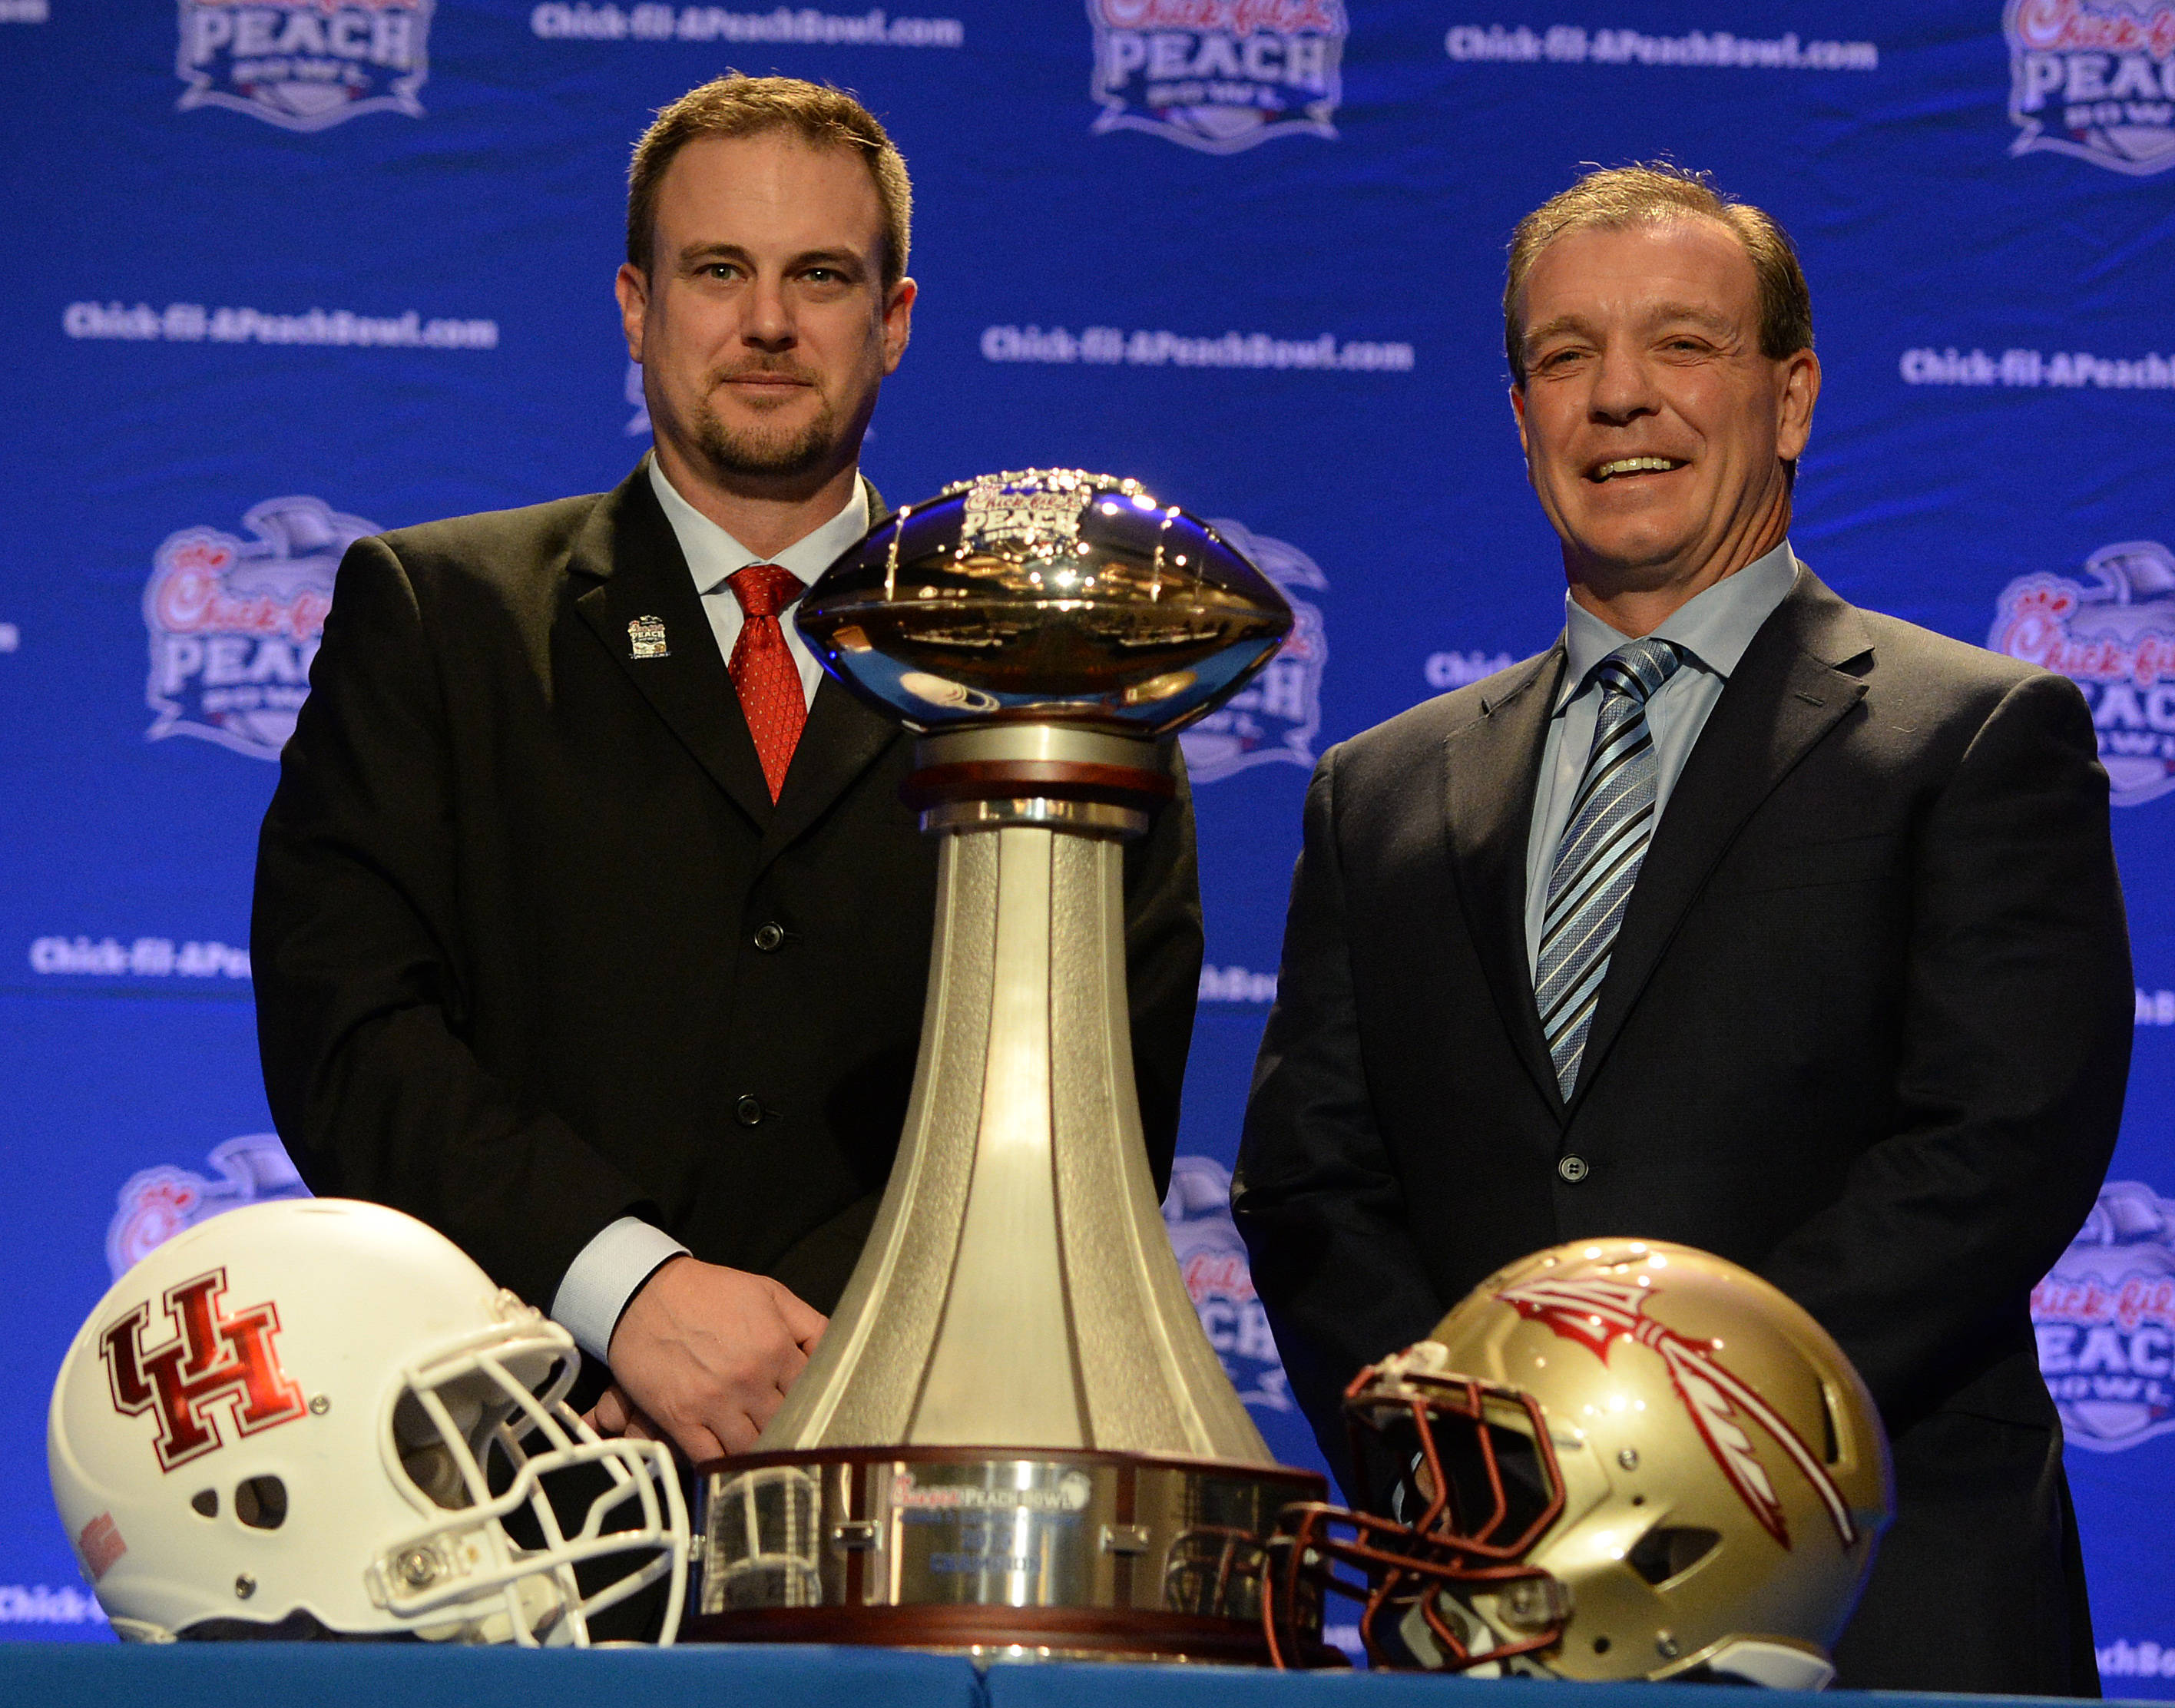 Chick-Fil-A Peach Bowl Dec. 30